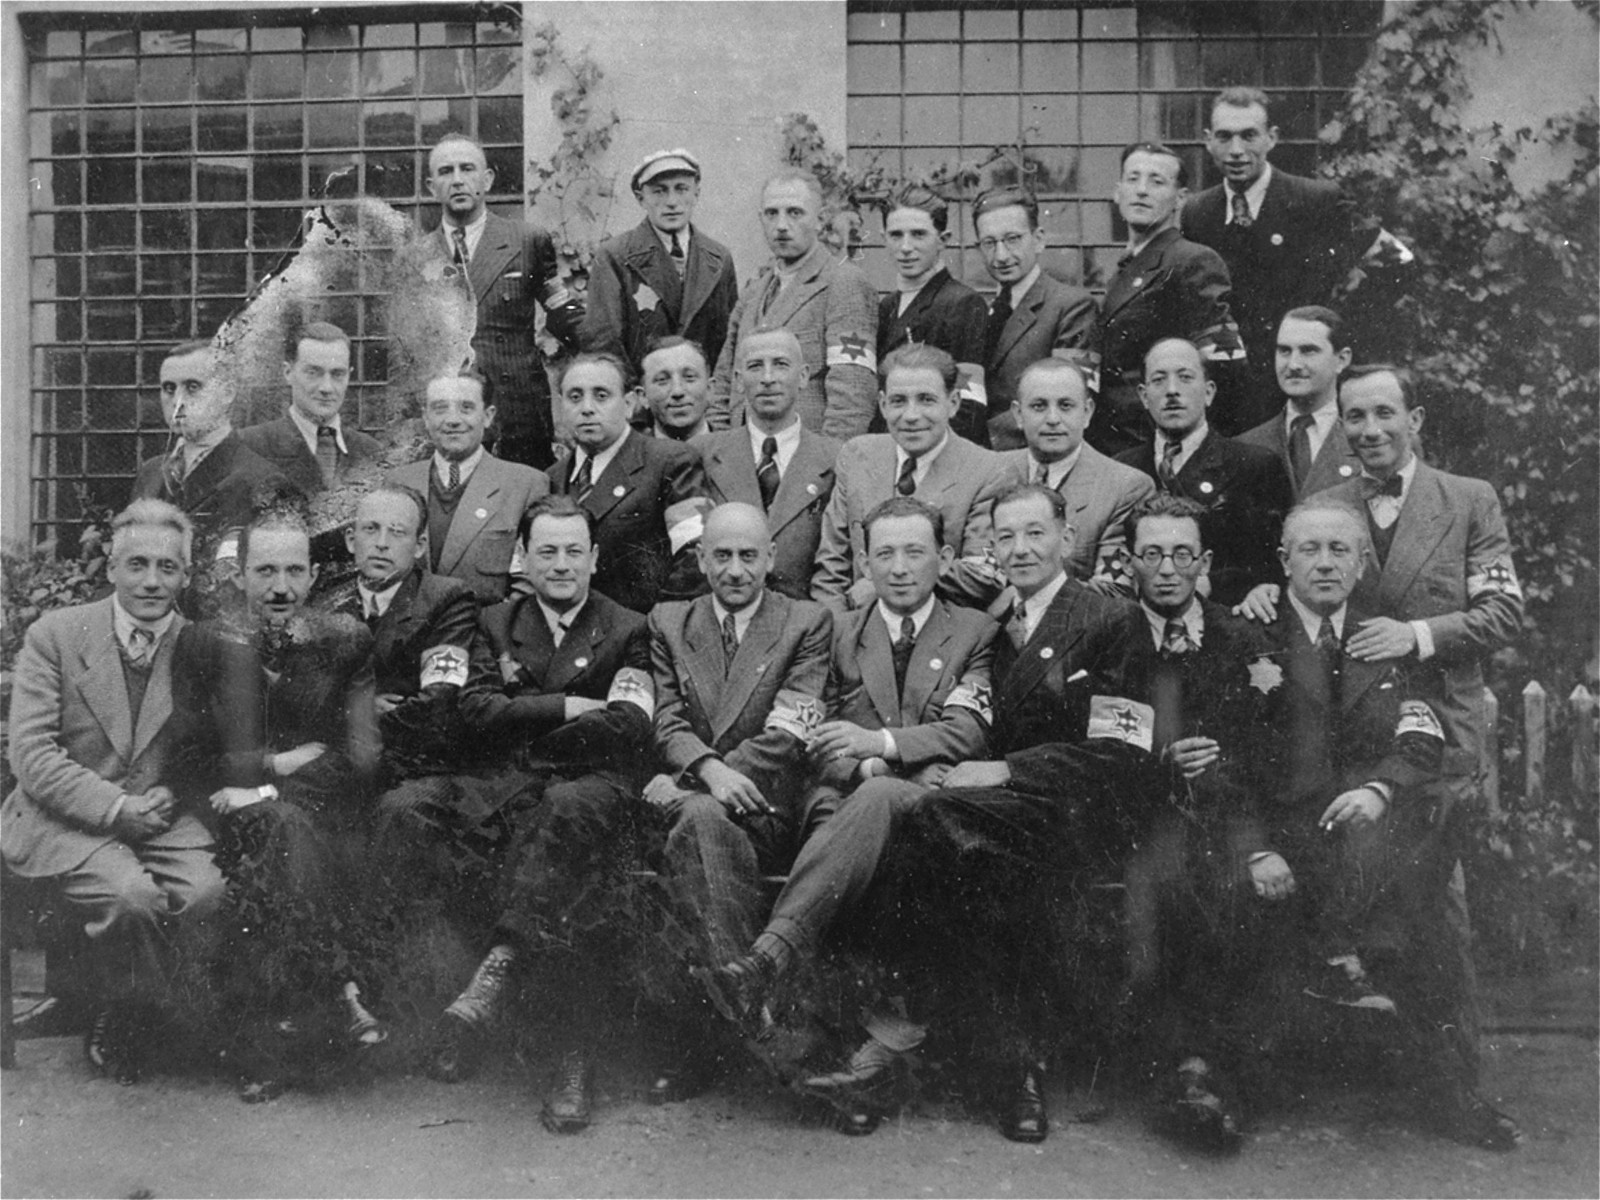 Group portrait of members of the Lodz ghetto police.   Among those pictured is Leon Rozenblat, chief of the Lodz ghetto police (front row, center).  Abram Josef (Alfred) Chimowicz is sitting immediately left of Leon Rozenblat.